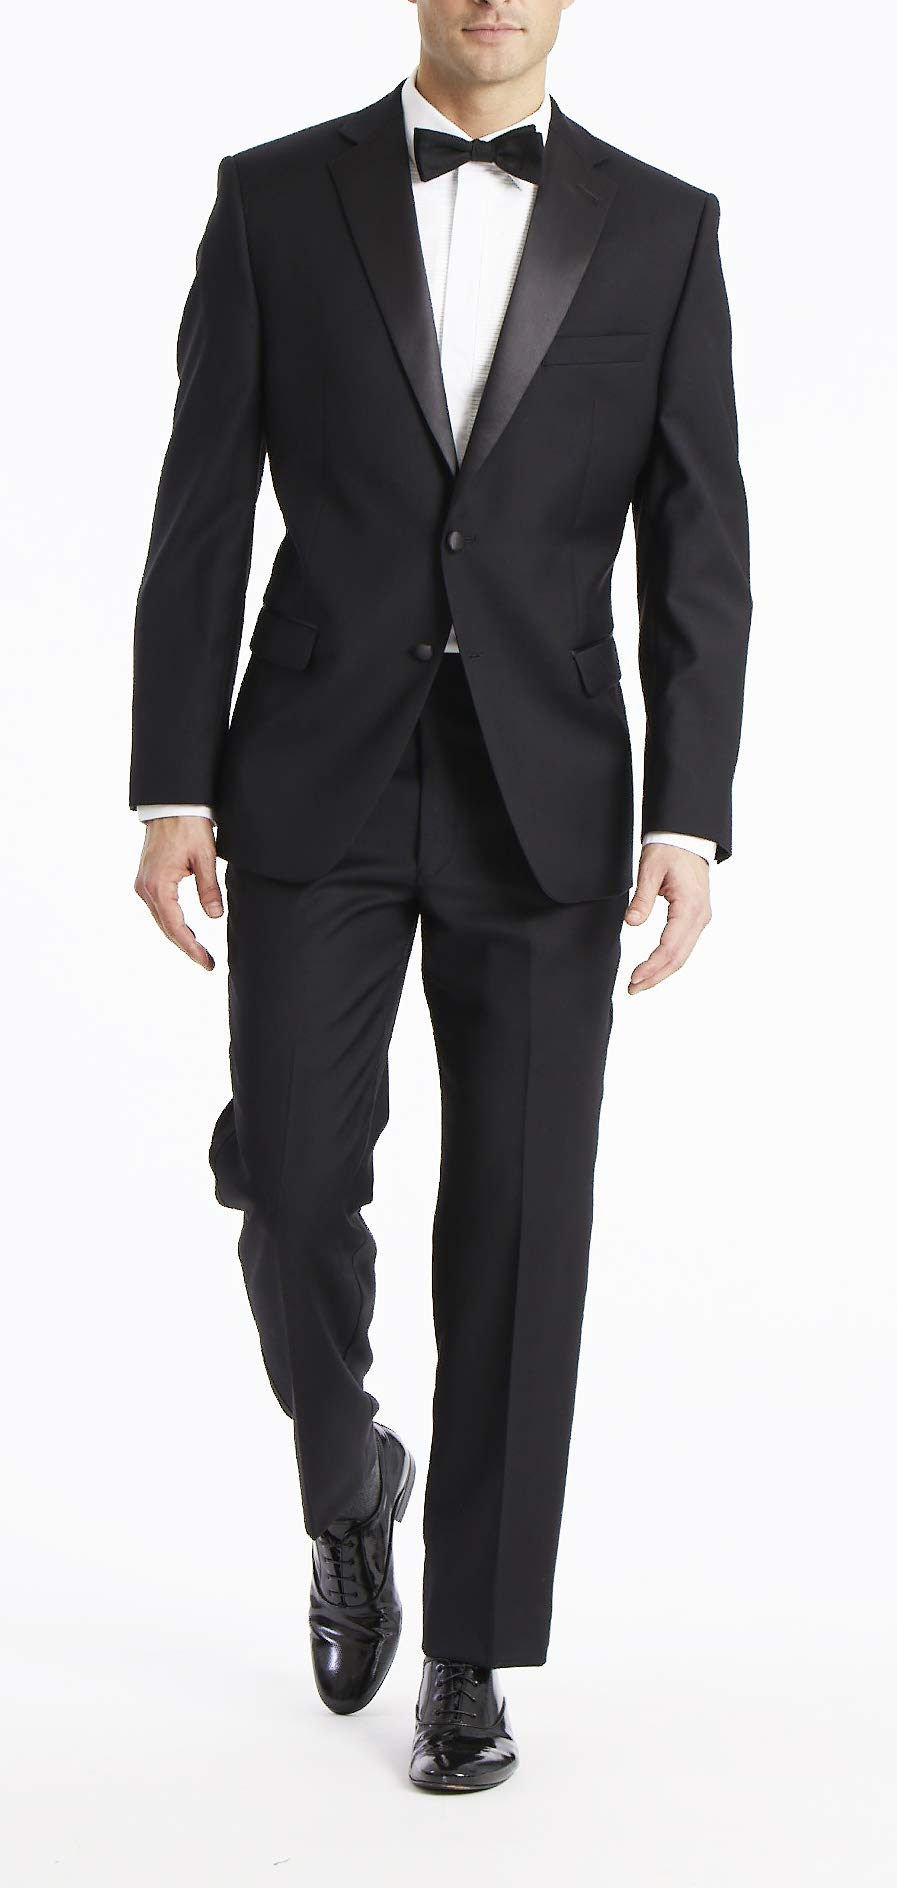 Calvin Klein Men's Modern Fit 100% Wool Tuxedo, Black, 43 Regular by Calvin Klein